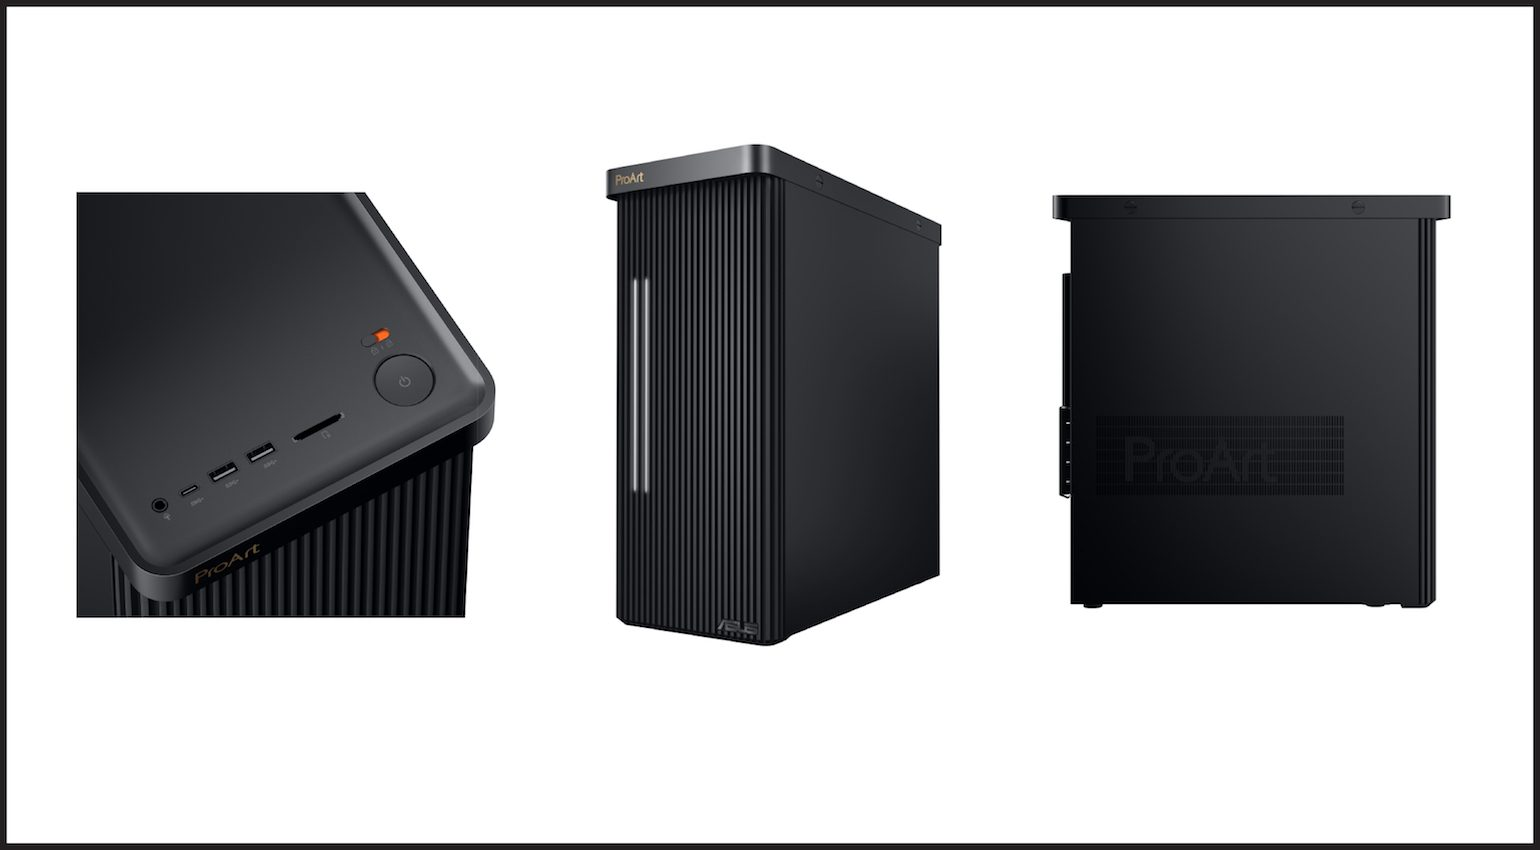 The ProArt Station PD5, a new desktop from ASUS